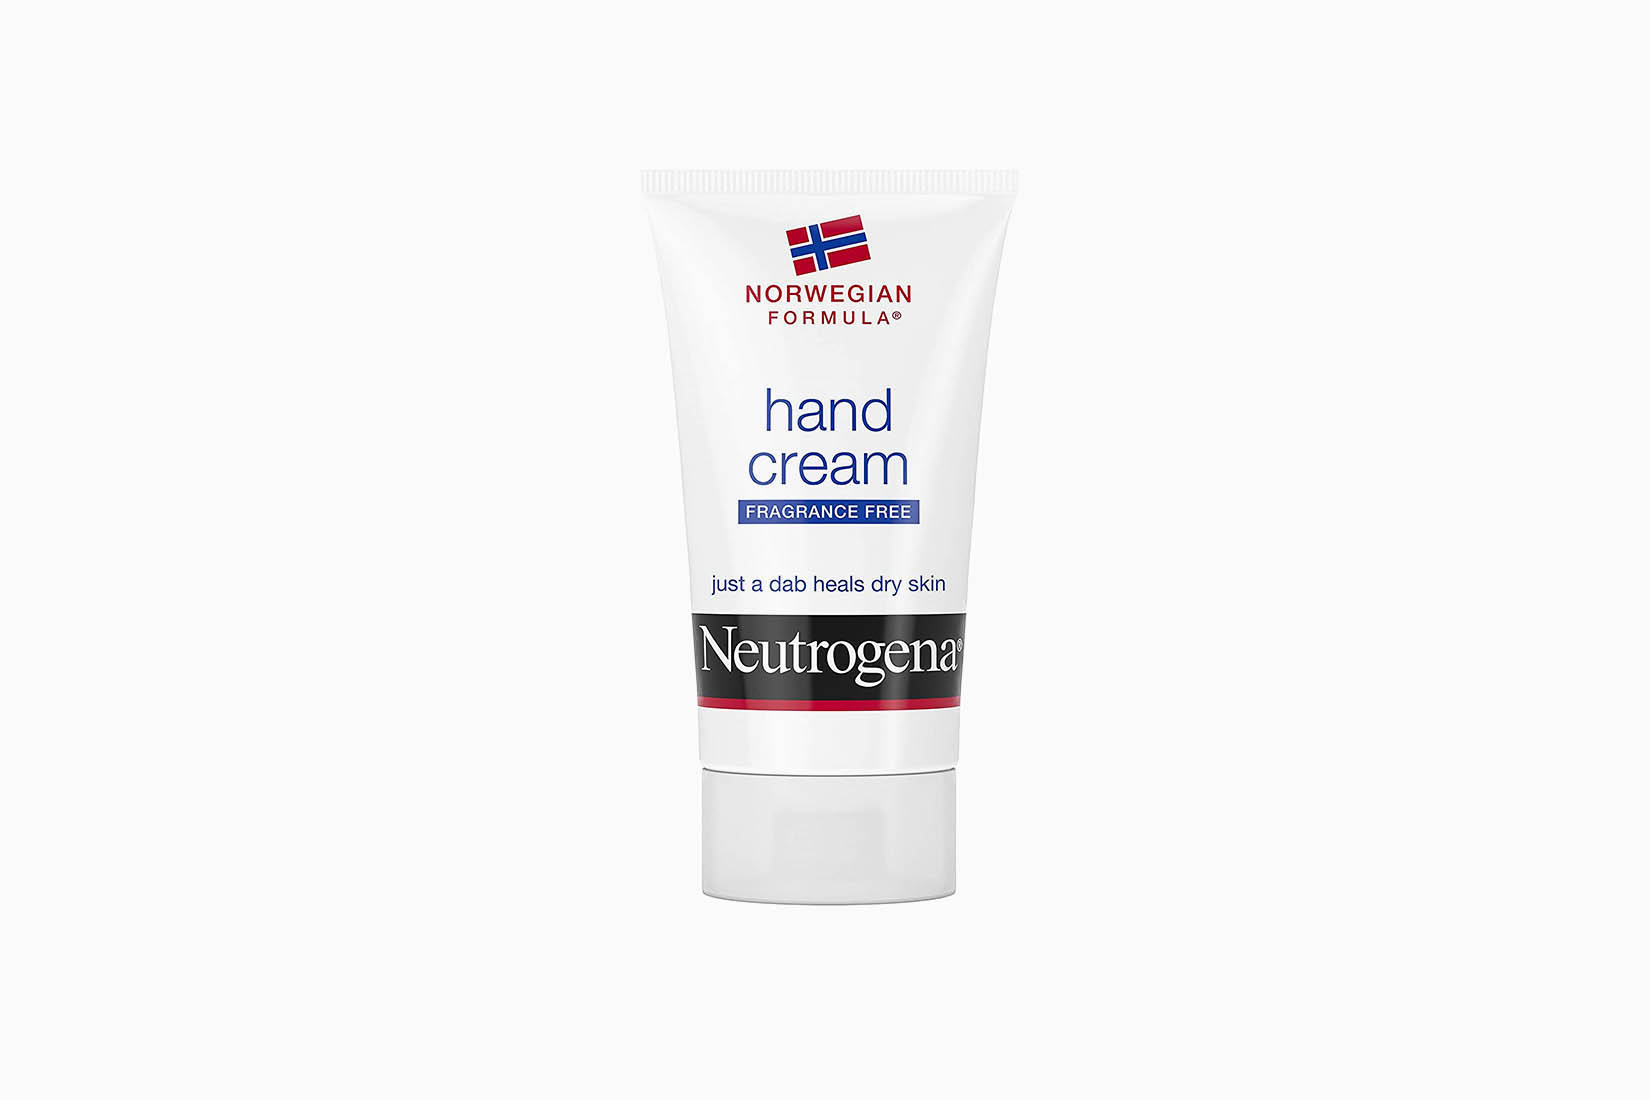 Best Hand Cream Neutrogena Review - Luxe Digital